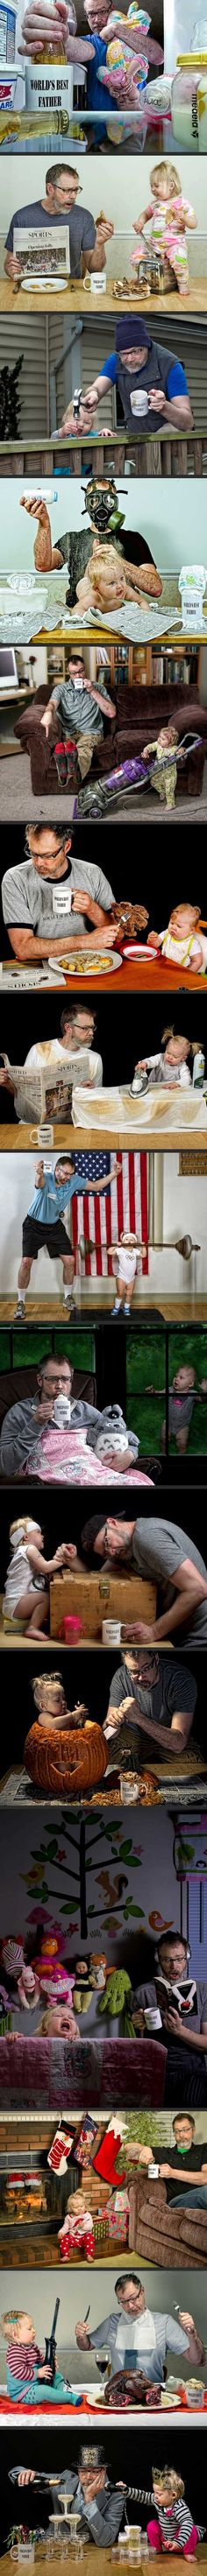 World's Best Dad. This is soooooo funny